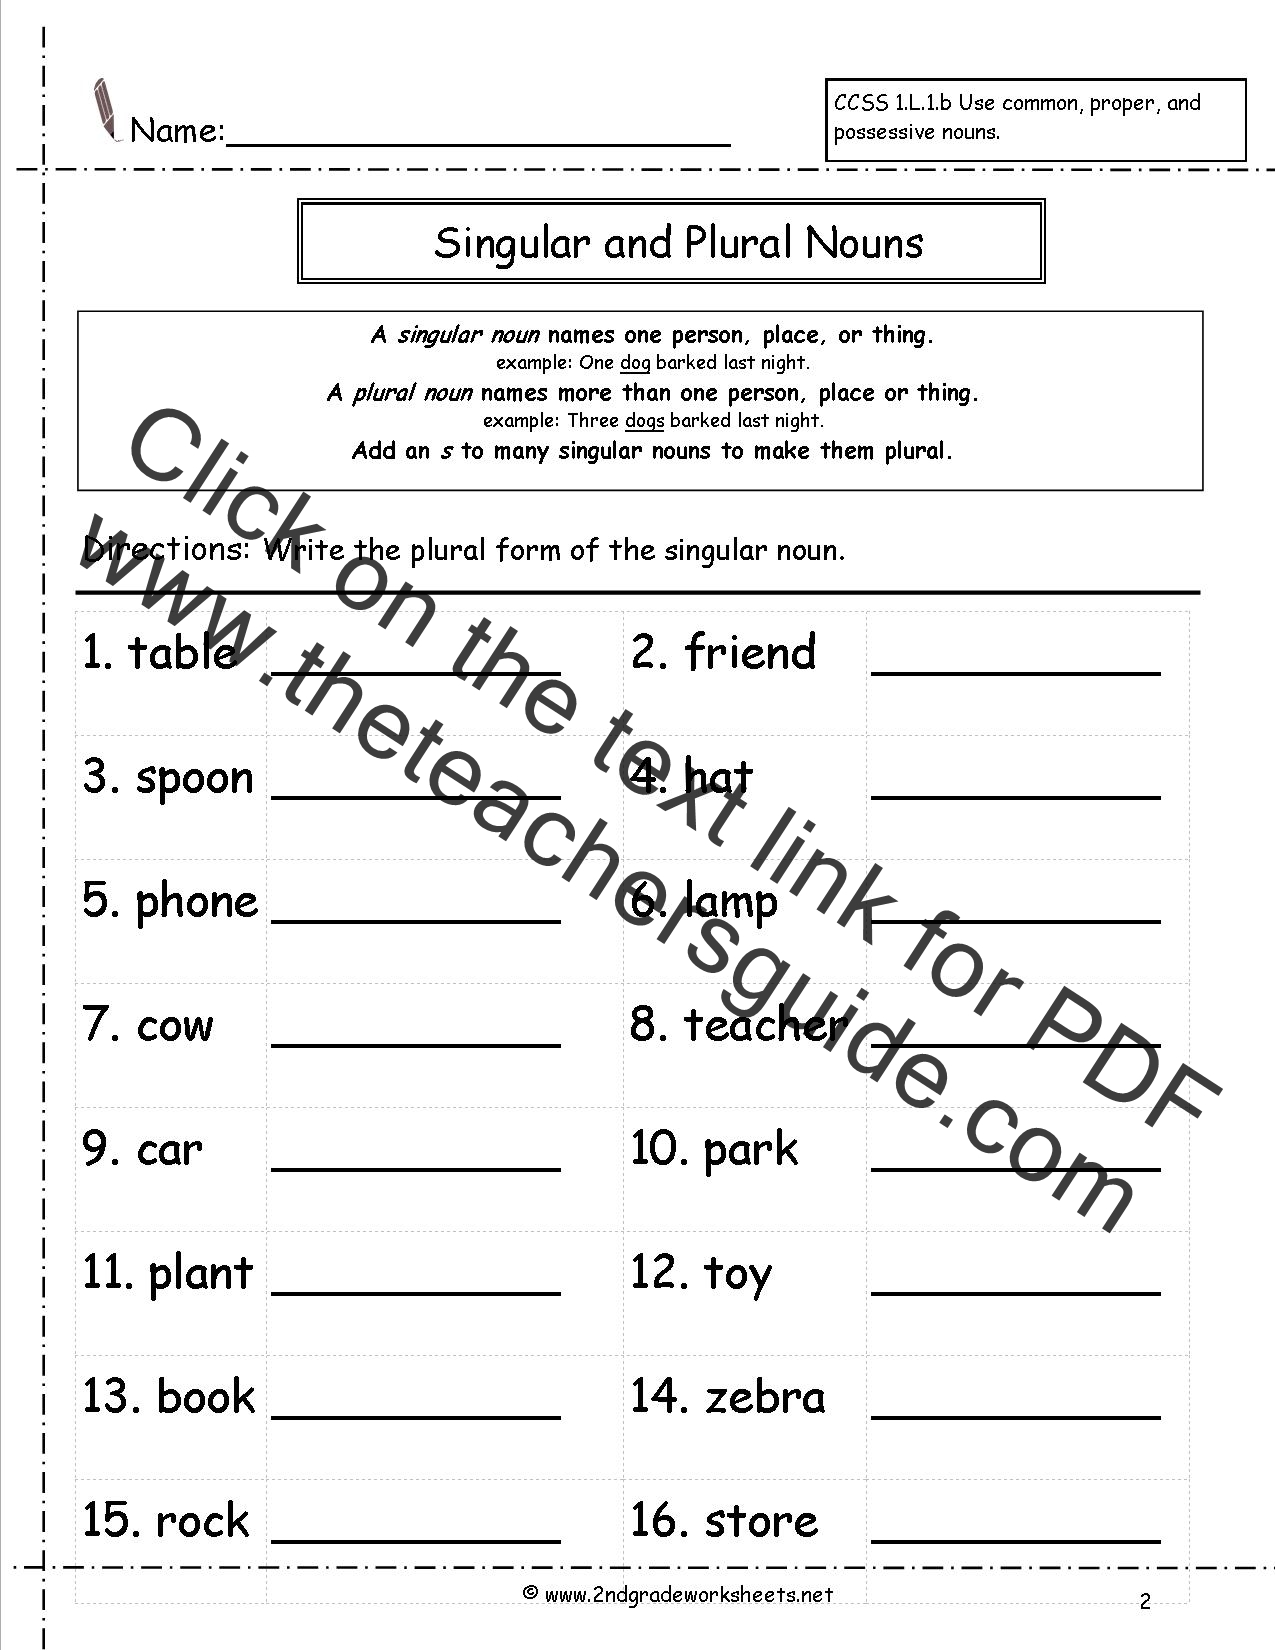 Worksheets Irregular Plurals Worksheet singular and plural nouns worksheets worksheet